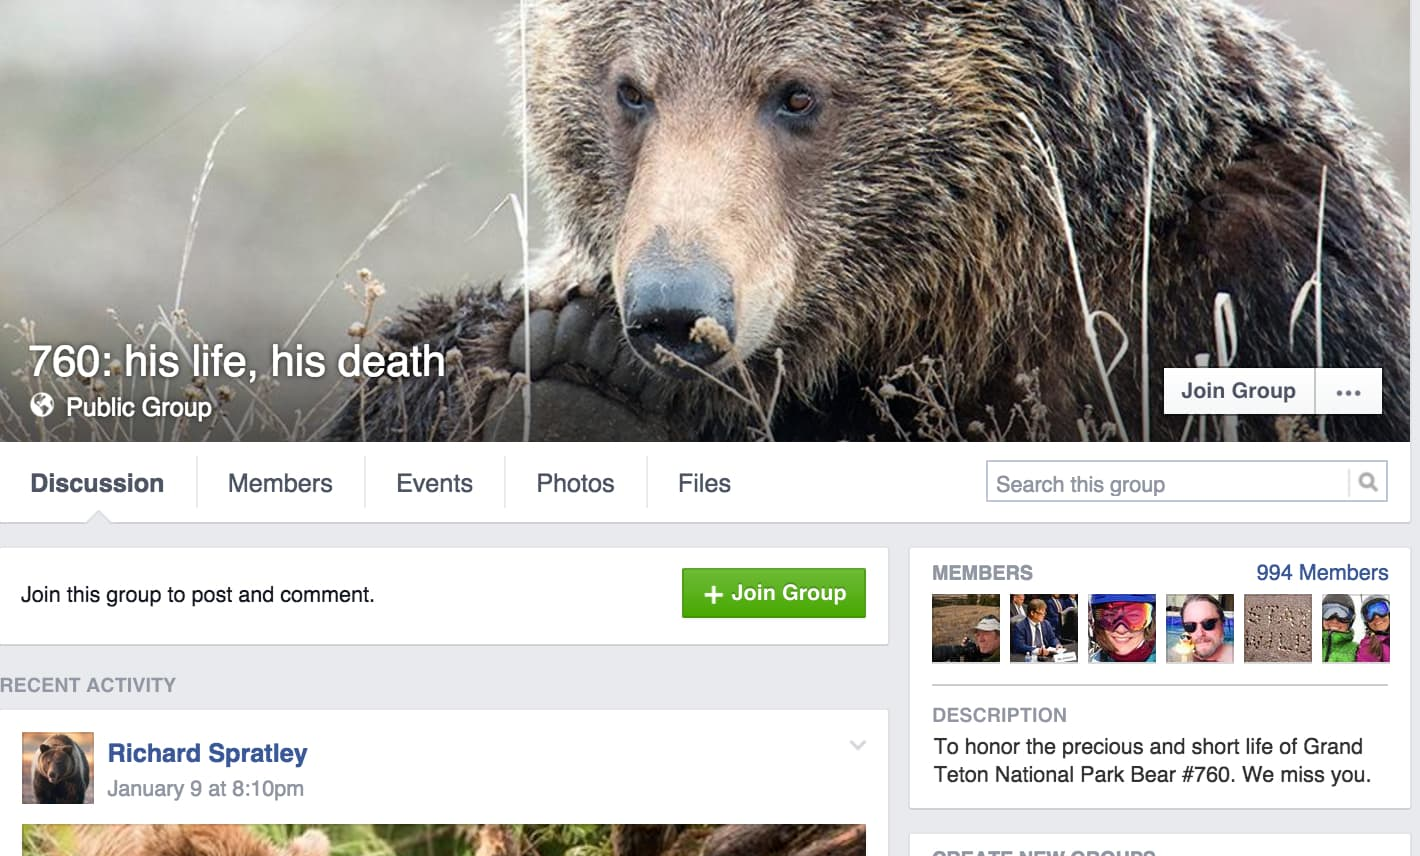 Social media now plays a role in public reaction to grizzly bear management, including last year's decision to kill a man-eating bear in Yellowstone. Before that event advocates created a Facebook page for a different bear — grizzly 760 — after the Grand Teton National Park bruin frequented developed areas outside the park, was trapped, moved and ultimately killed. The public group has 994 Facebook members. (760: his life, his death)